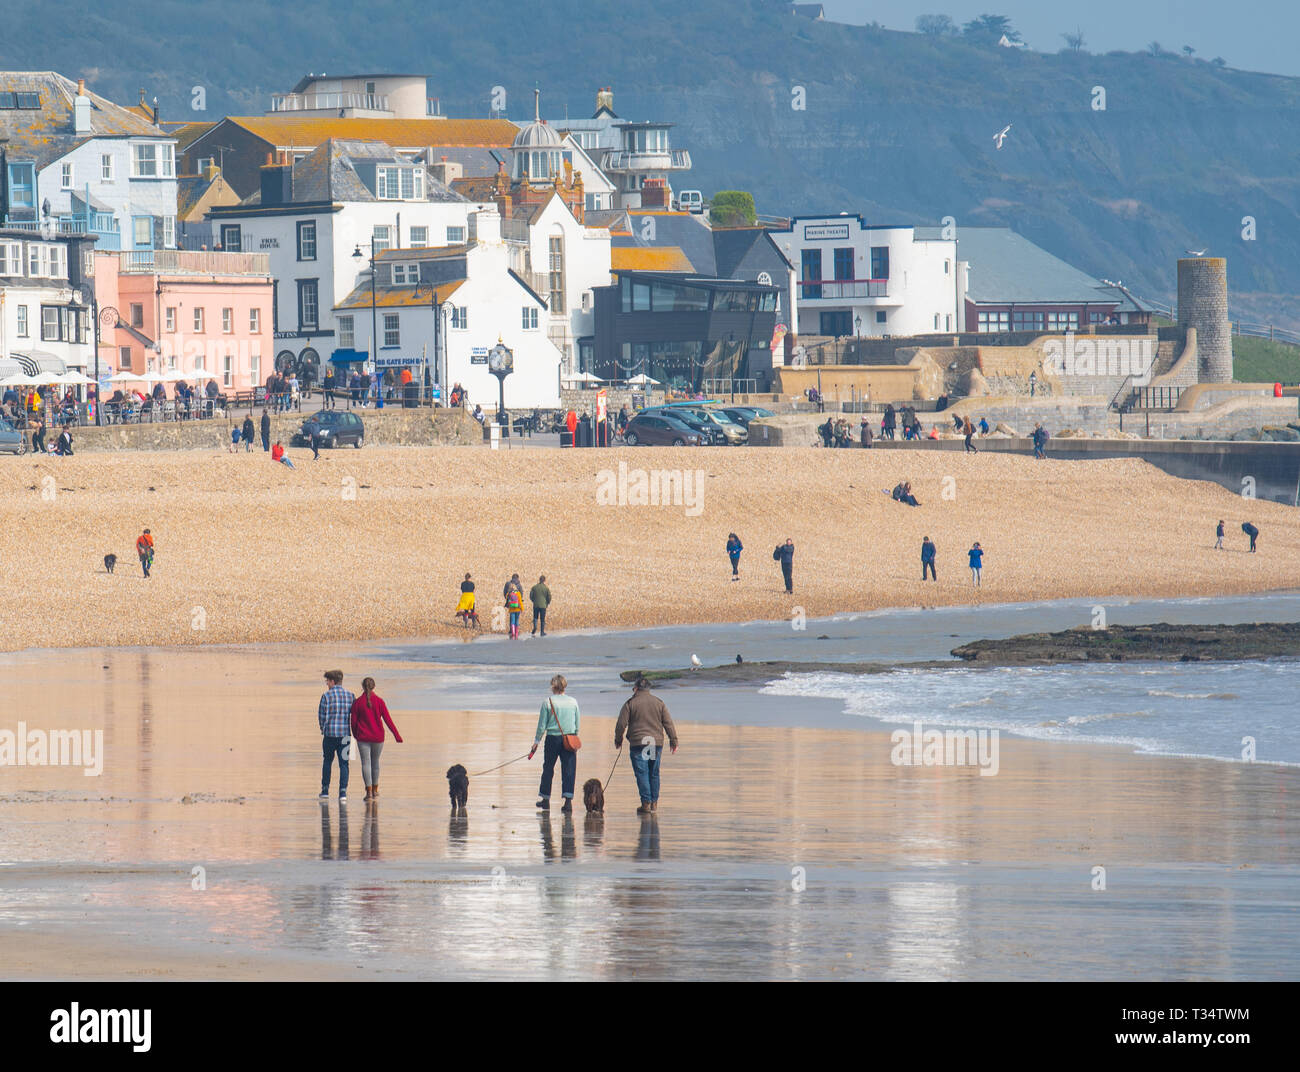 Lyme Regis, Dorset, UK. 6th April 2019. UK Weather:  Visitors and locals enjoyed a breezy day with plenty of bright sunny spells at the picturesque seaside resort of Lyme Regis.  Credit: Celia McMahon/Alamy Live News - Stock Image